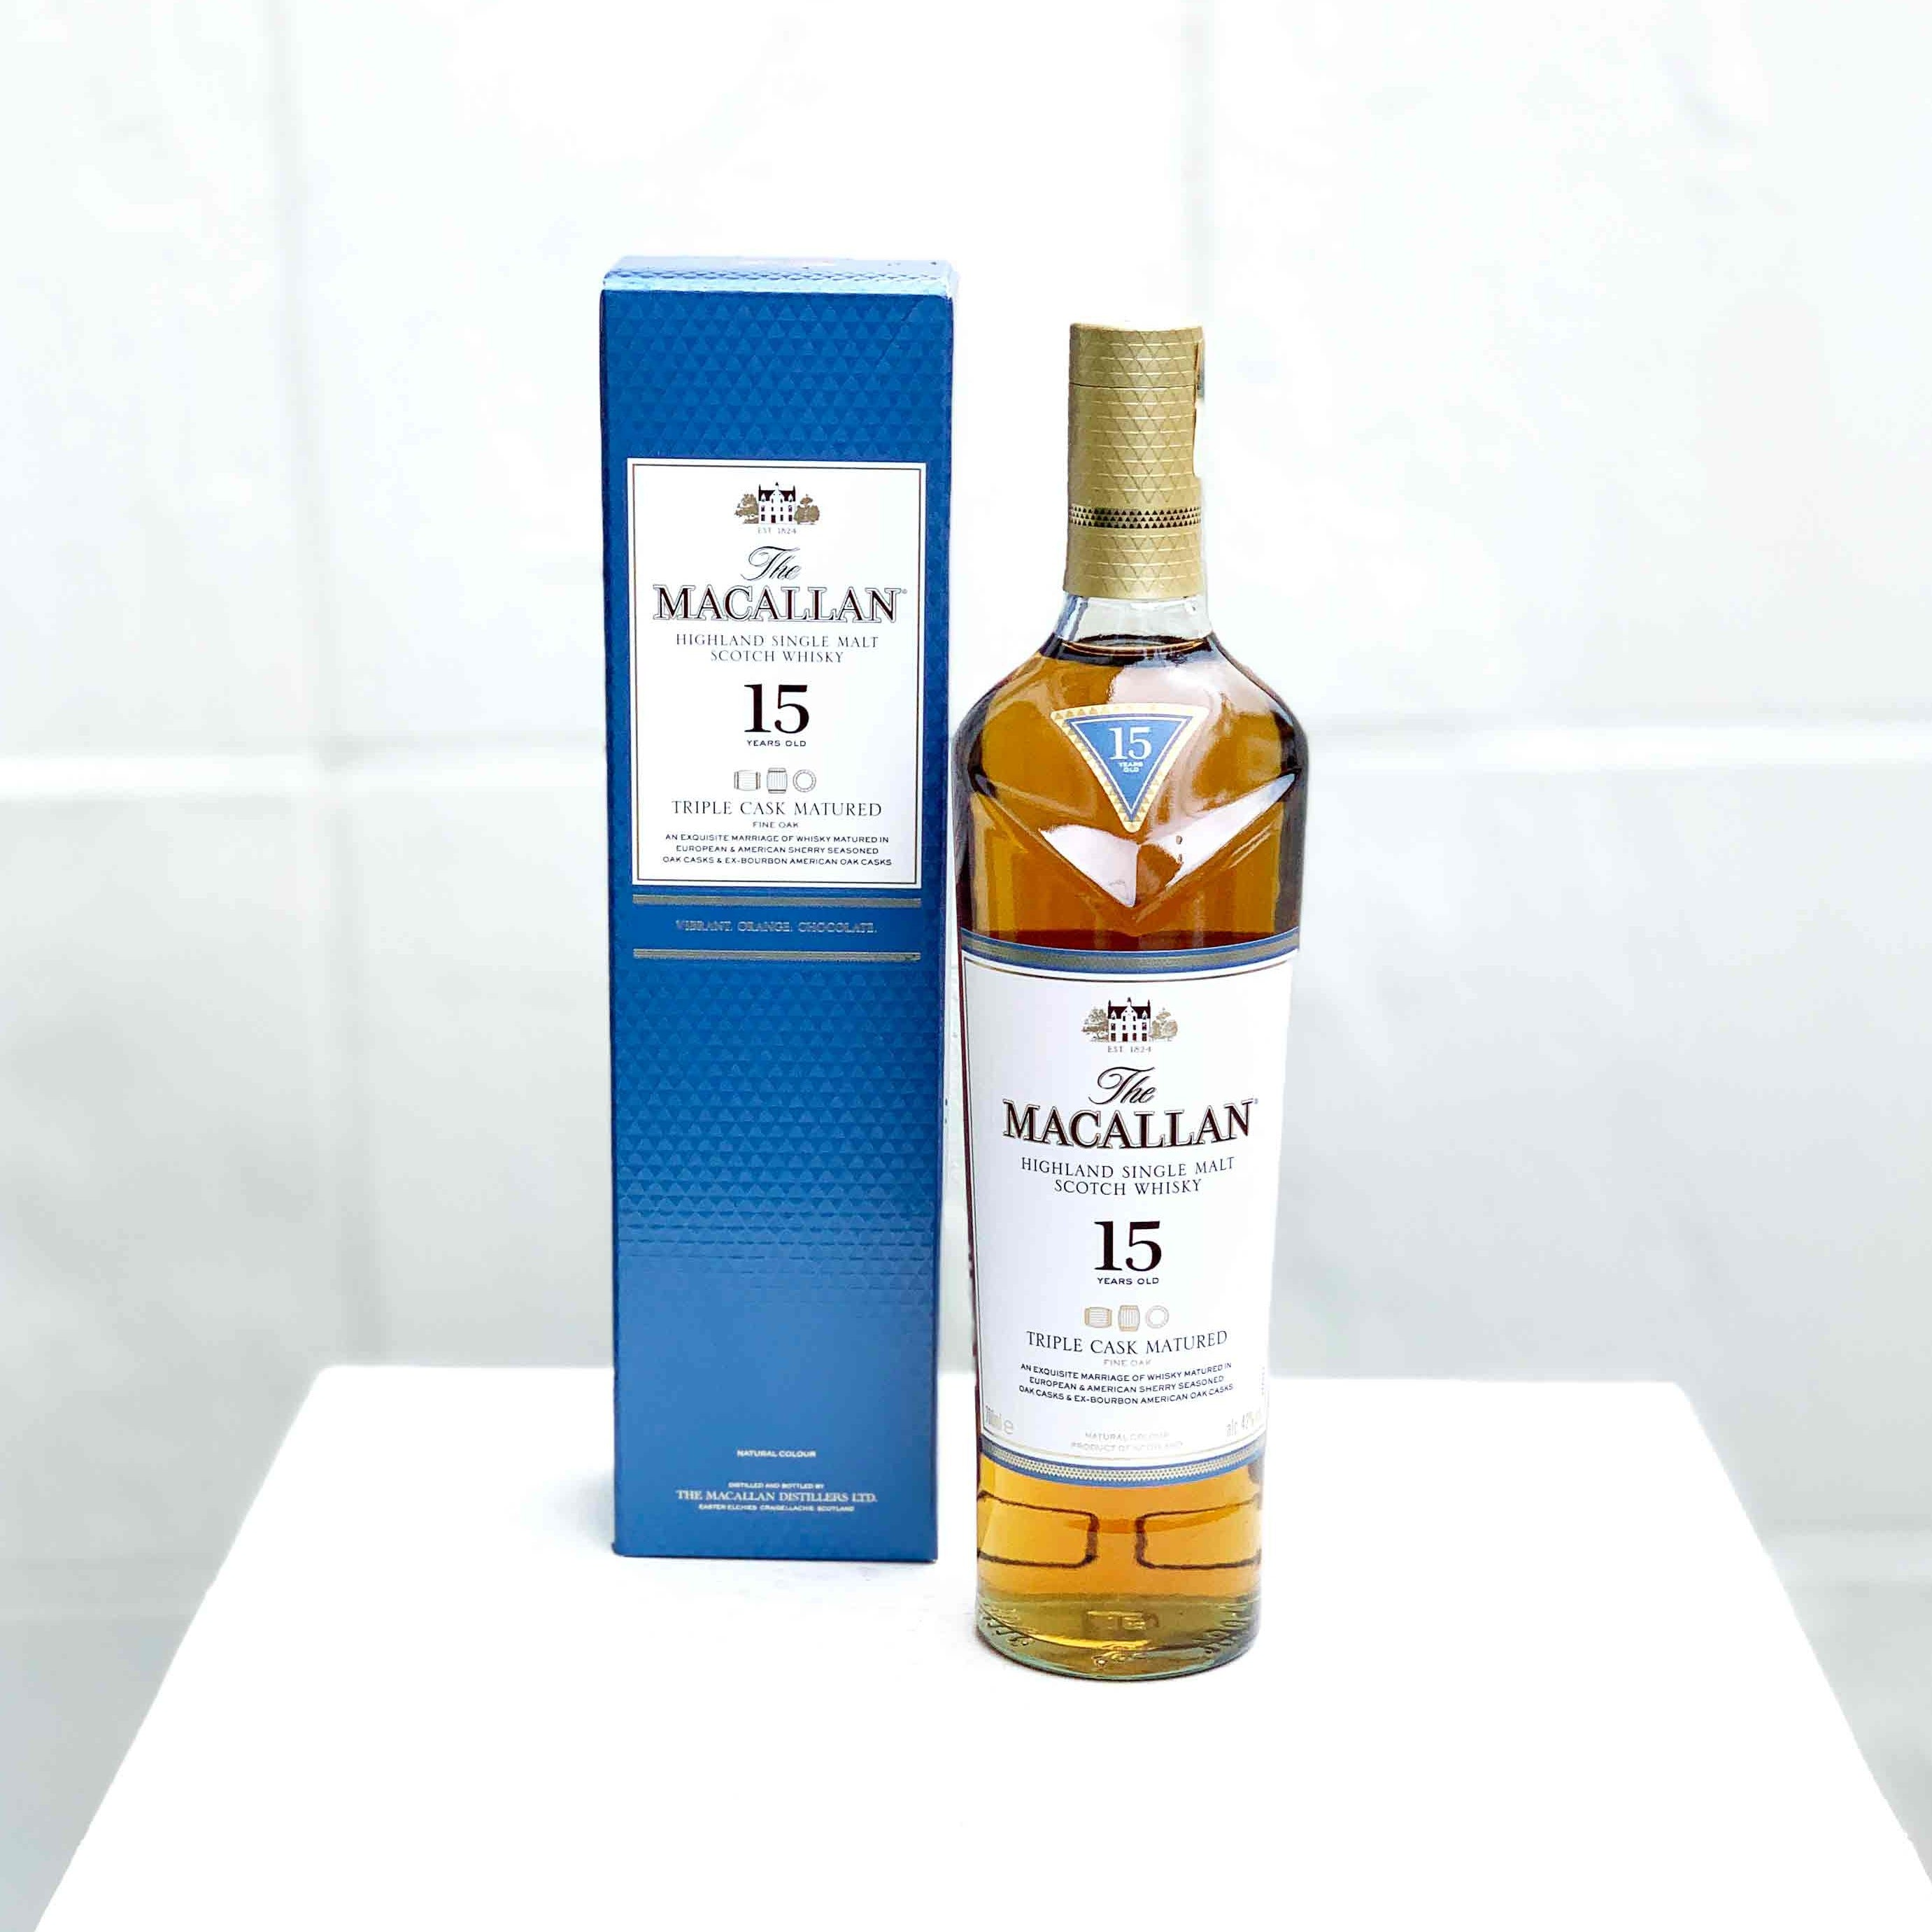 The Macallan 15 Year Old Triple Cask Matured Single Malt Scotch Whisky